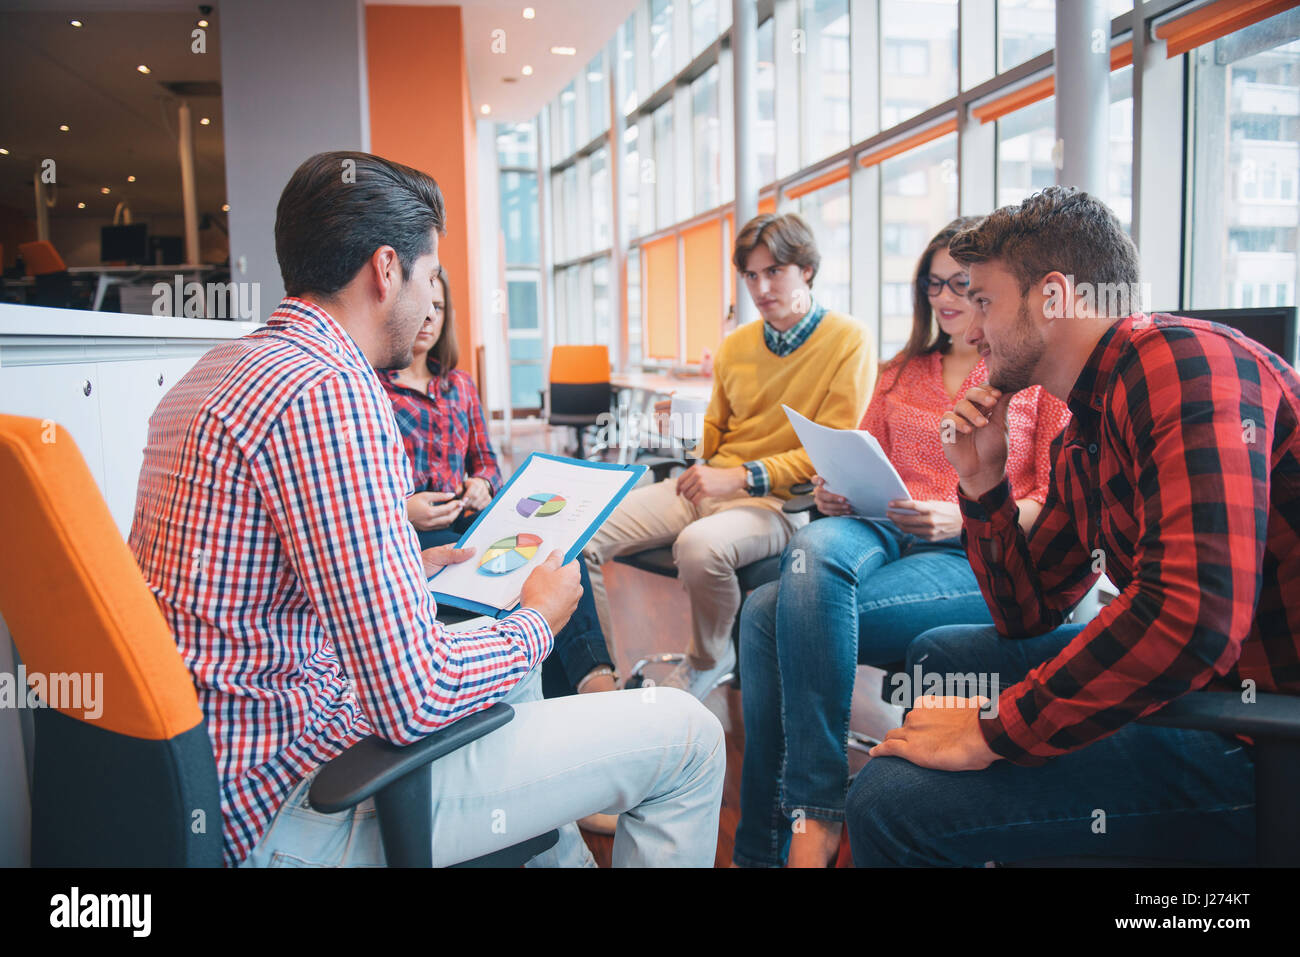 Shot of a group of young business professionals having a meeting. - Stock Image